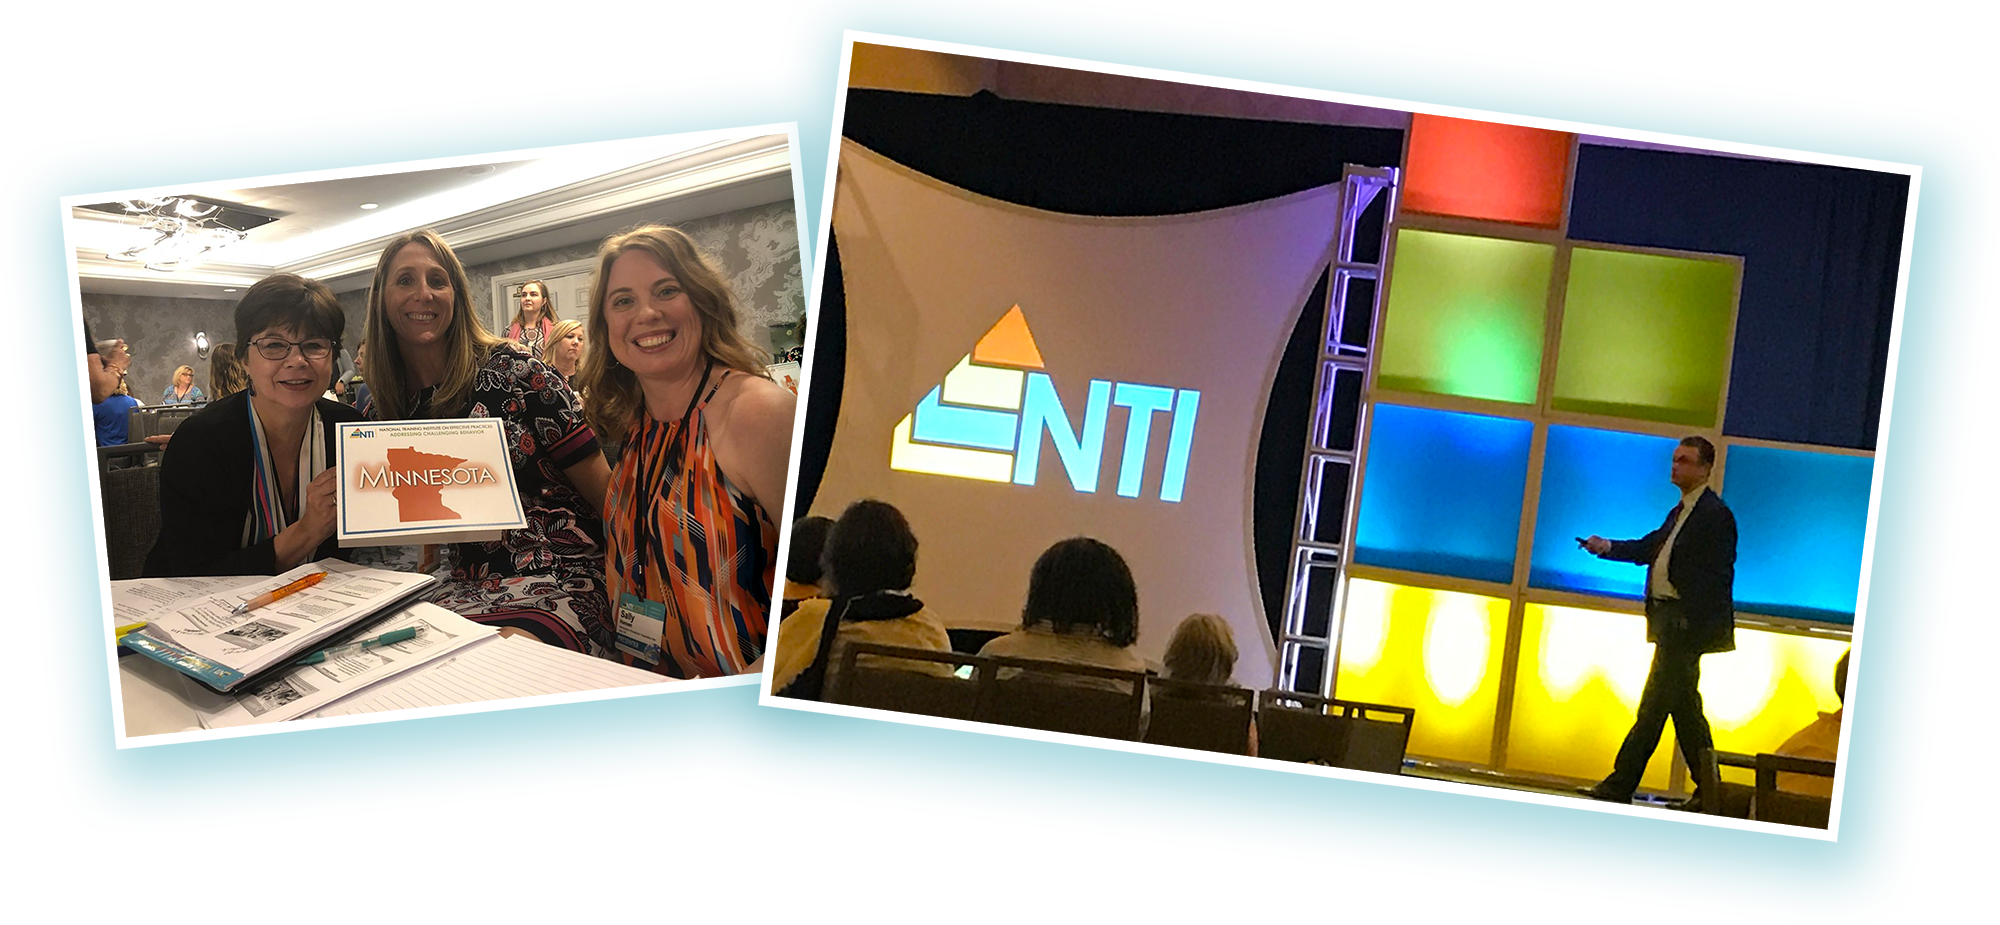 NTI 2022 National Training Institute on Effective Practices, Addressing Challenging Behavior. April 19-